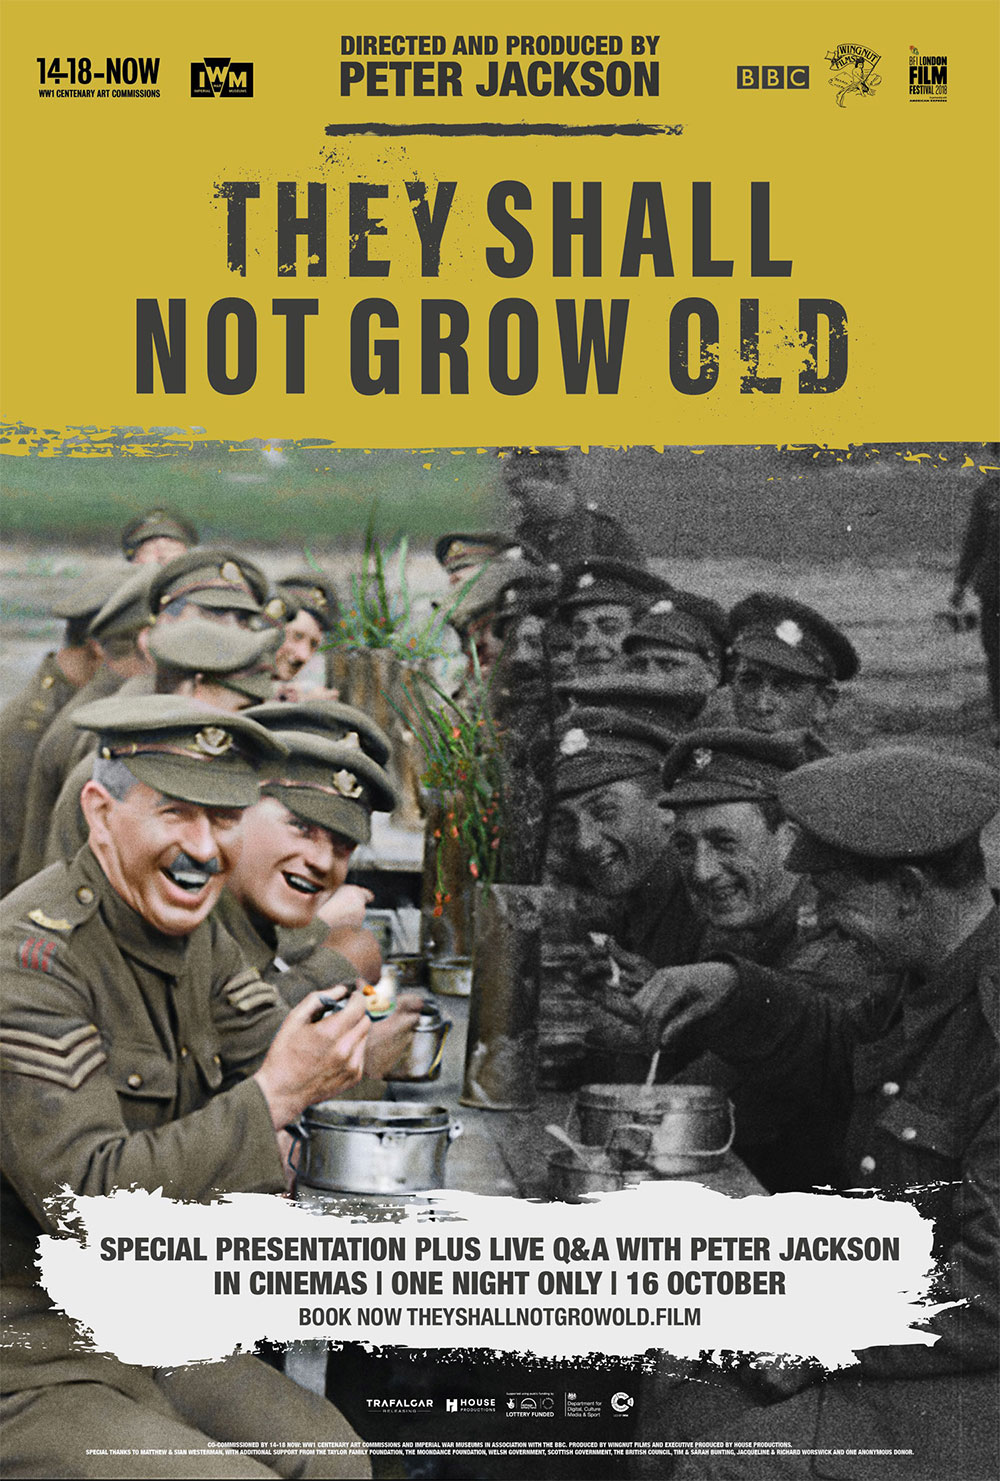 They Shall Not Grow Old documentary film to receive 2019 HPA Award 3